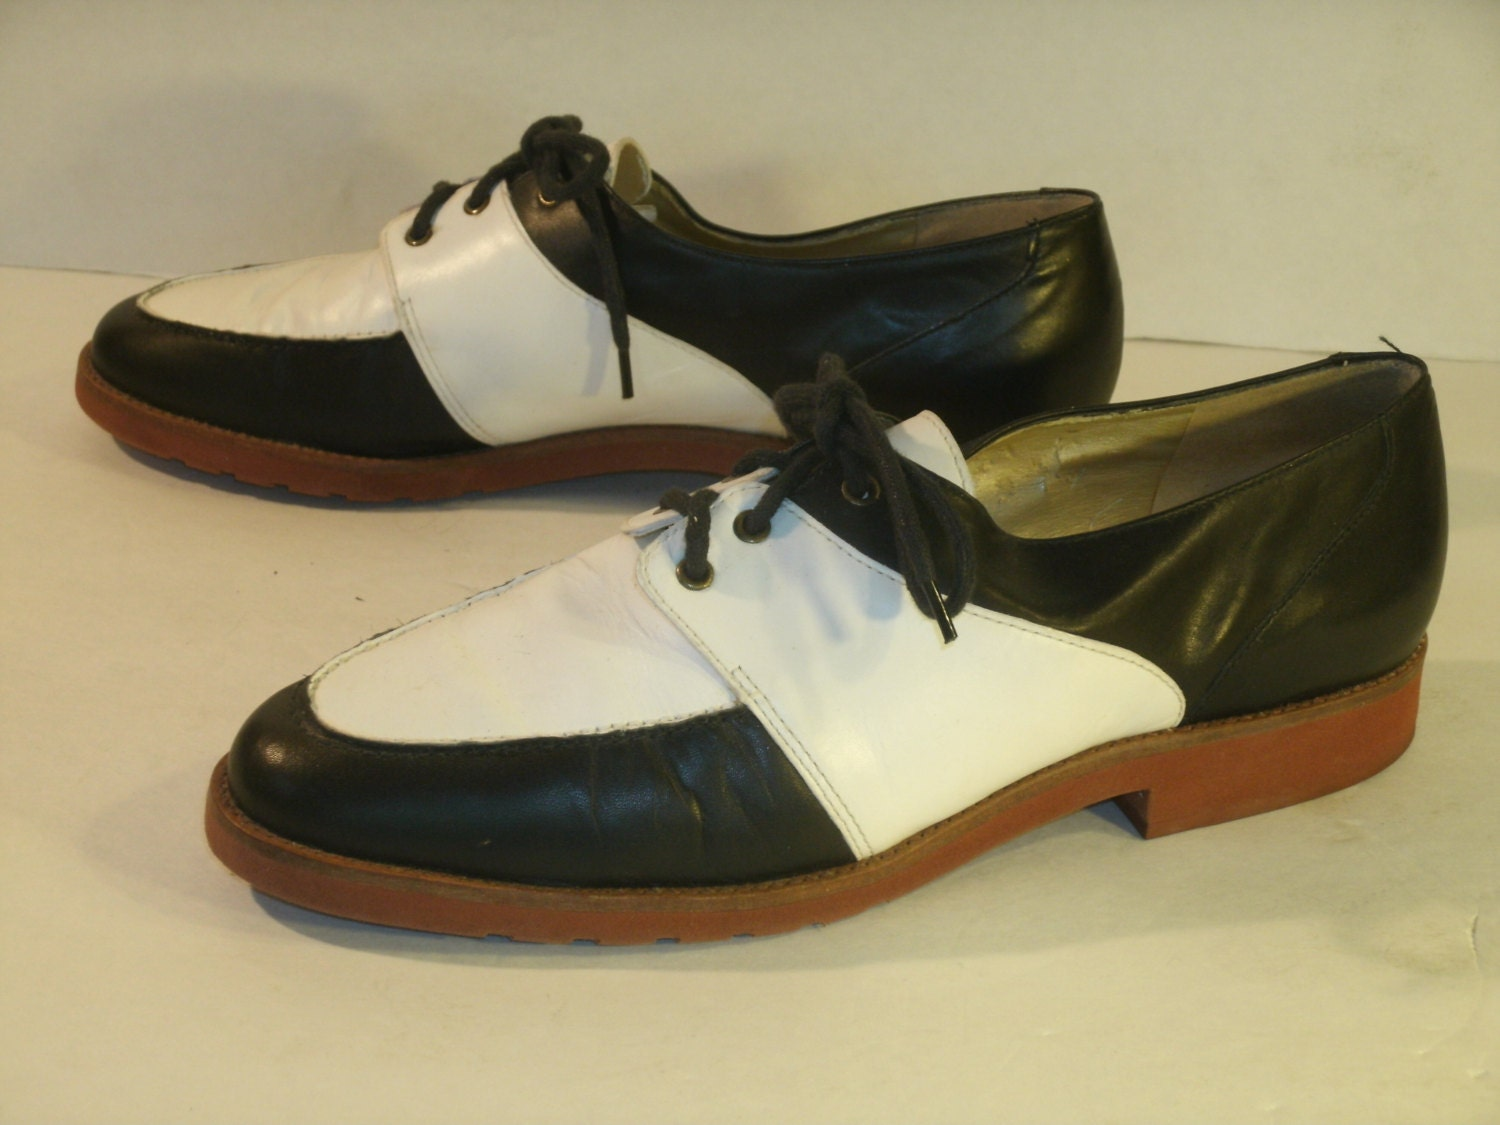 cappagallo leather oxfords saddle shoes black and white